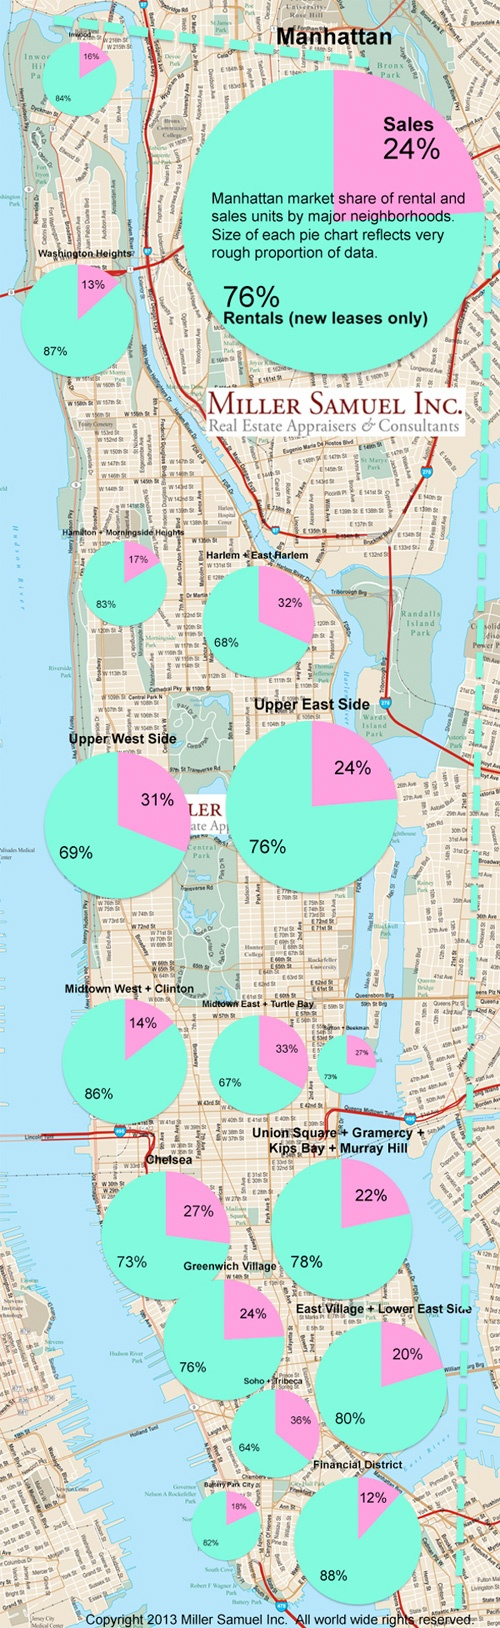 Tracking ratios between Manhattan sales and rentals with pies.